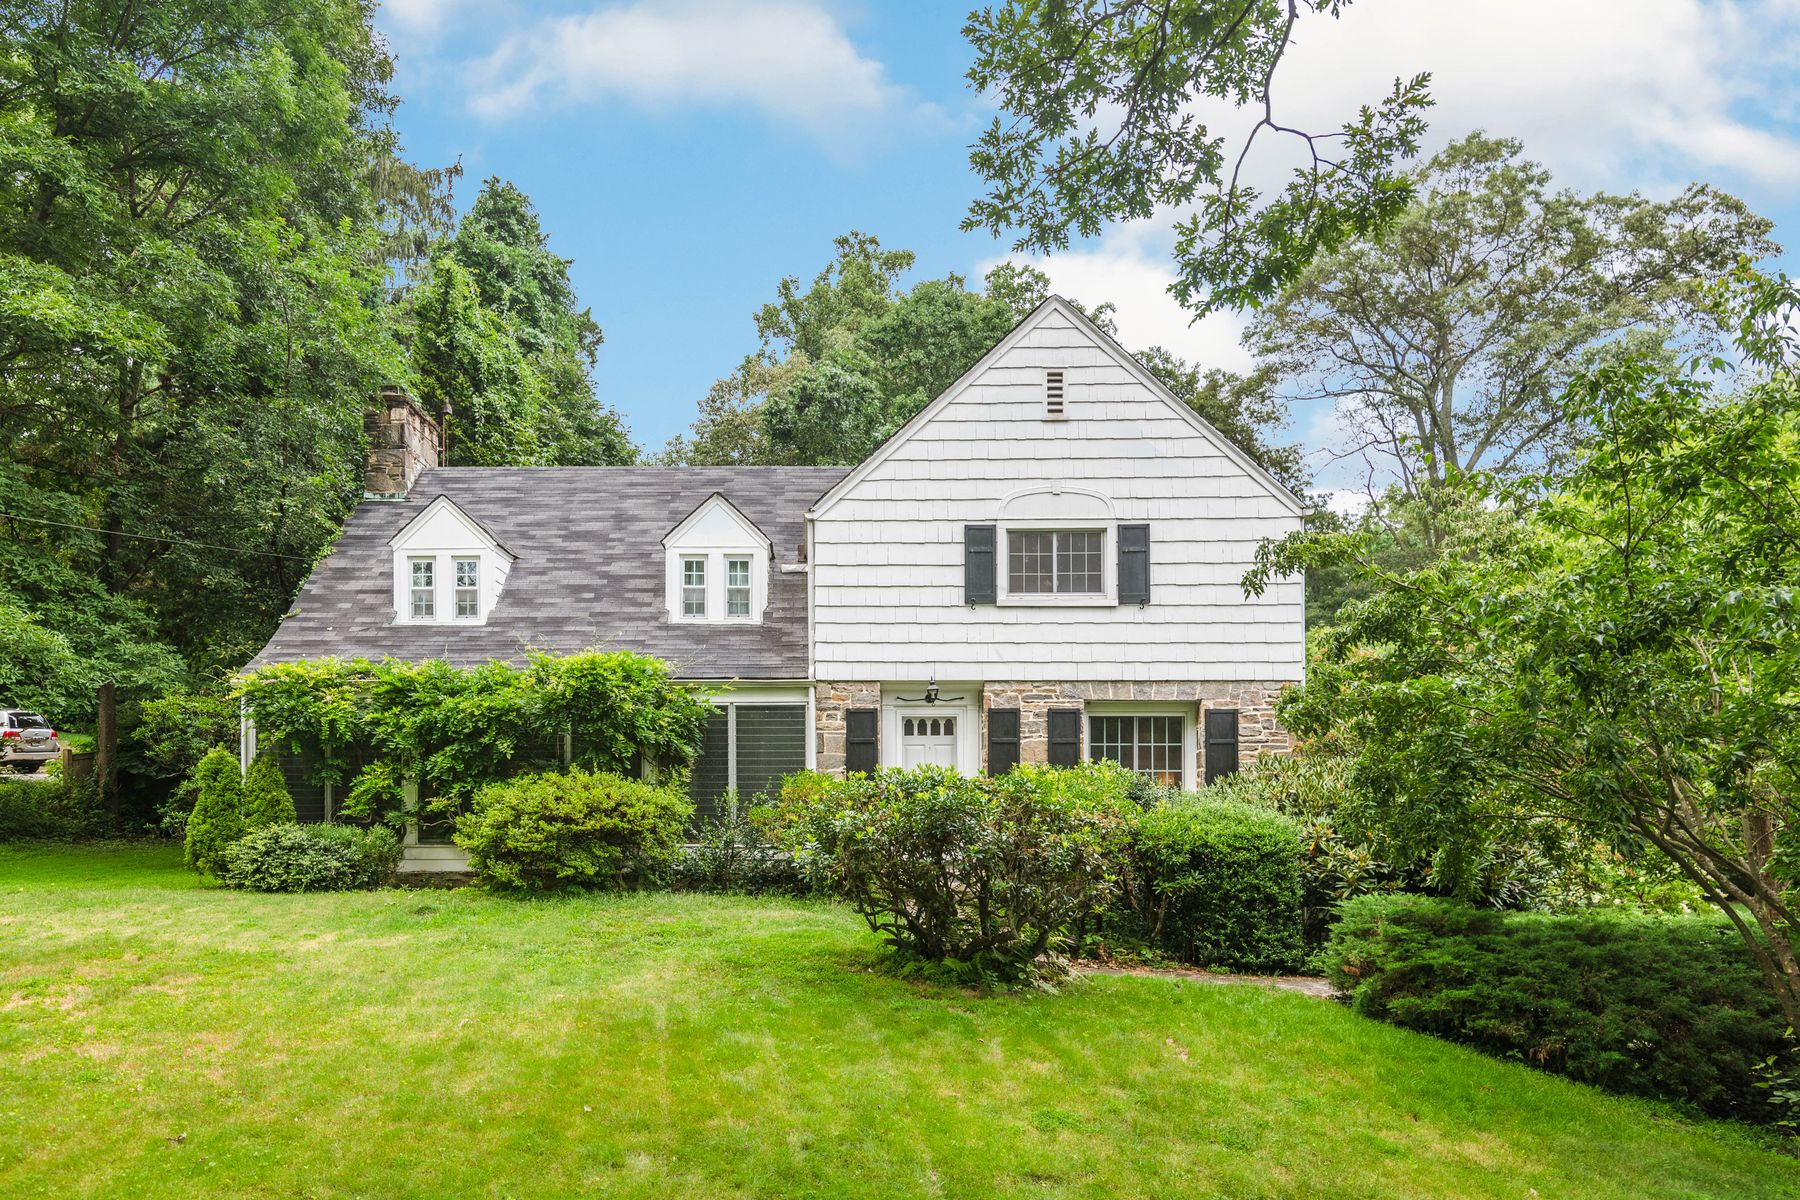 Single Family Homes for Sale at 25 Wesskum Wood Road Riverside, Connecticut 06878 United States